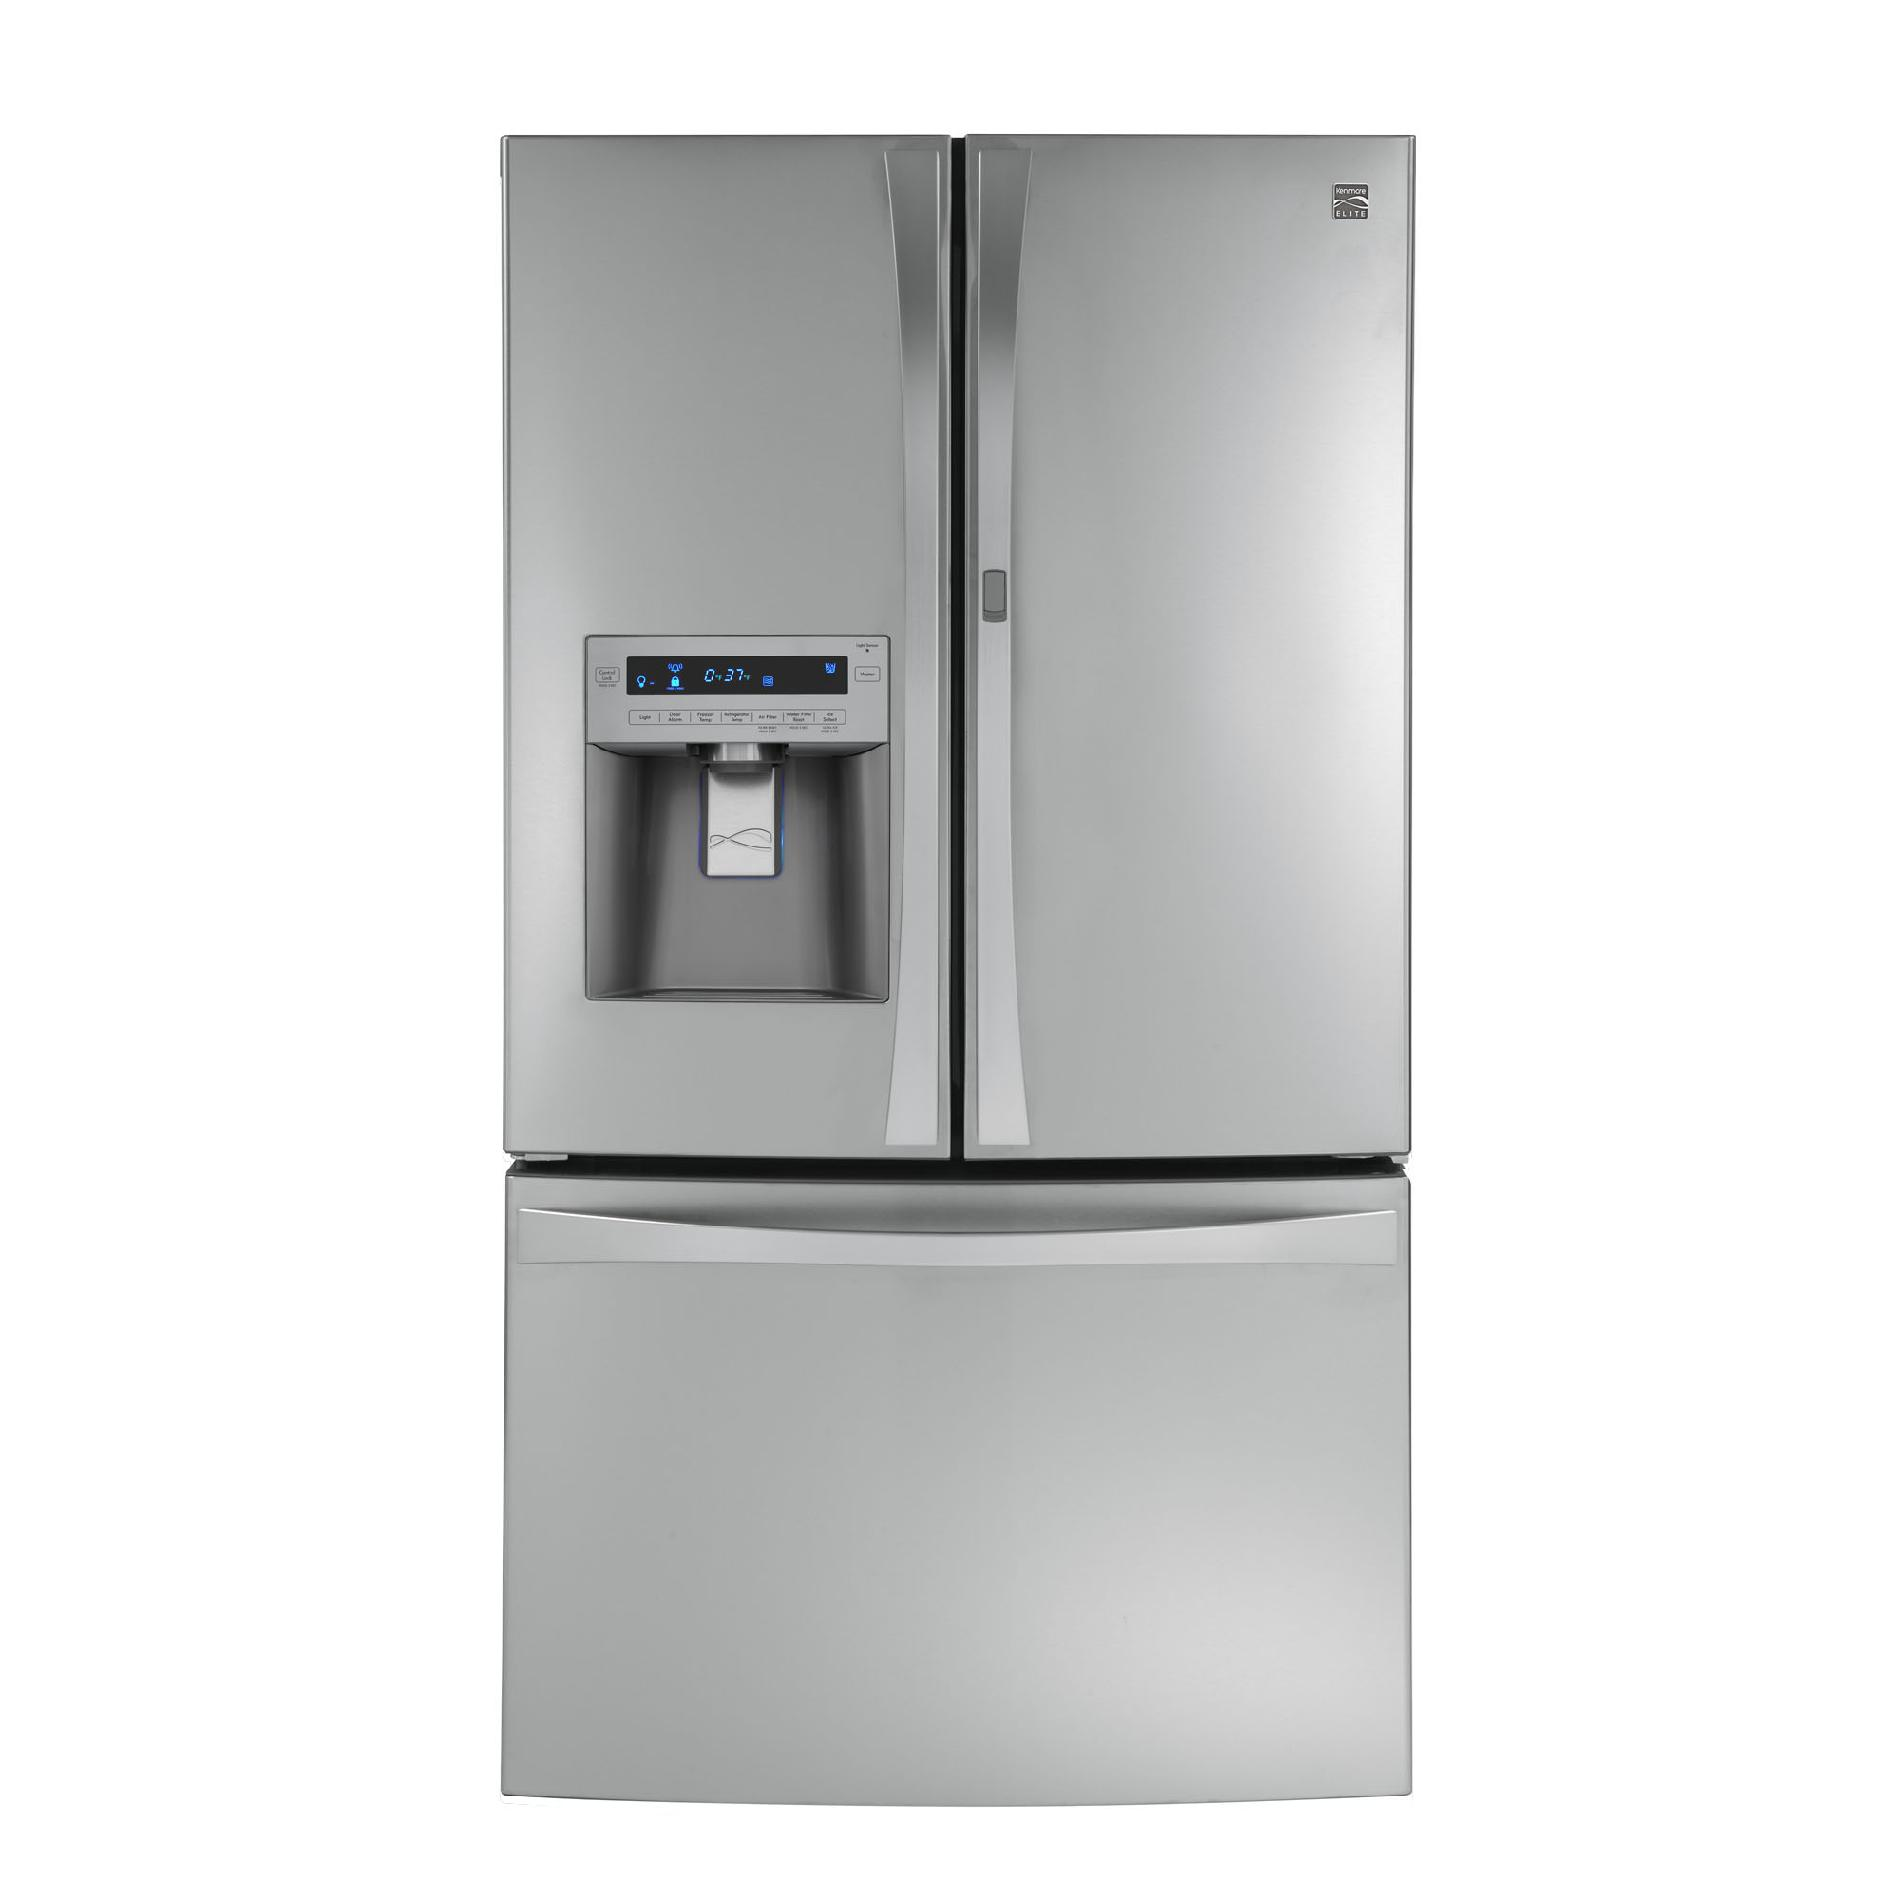 Kenmore Elite 29 cu. ft. Grab-N-Go French Door Bottom-Freezer Refrigerator - Stainless Steel